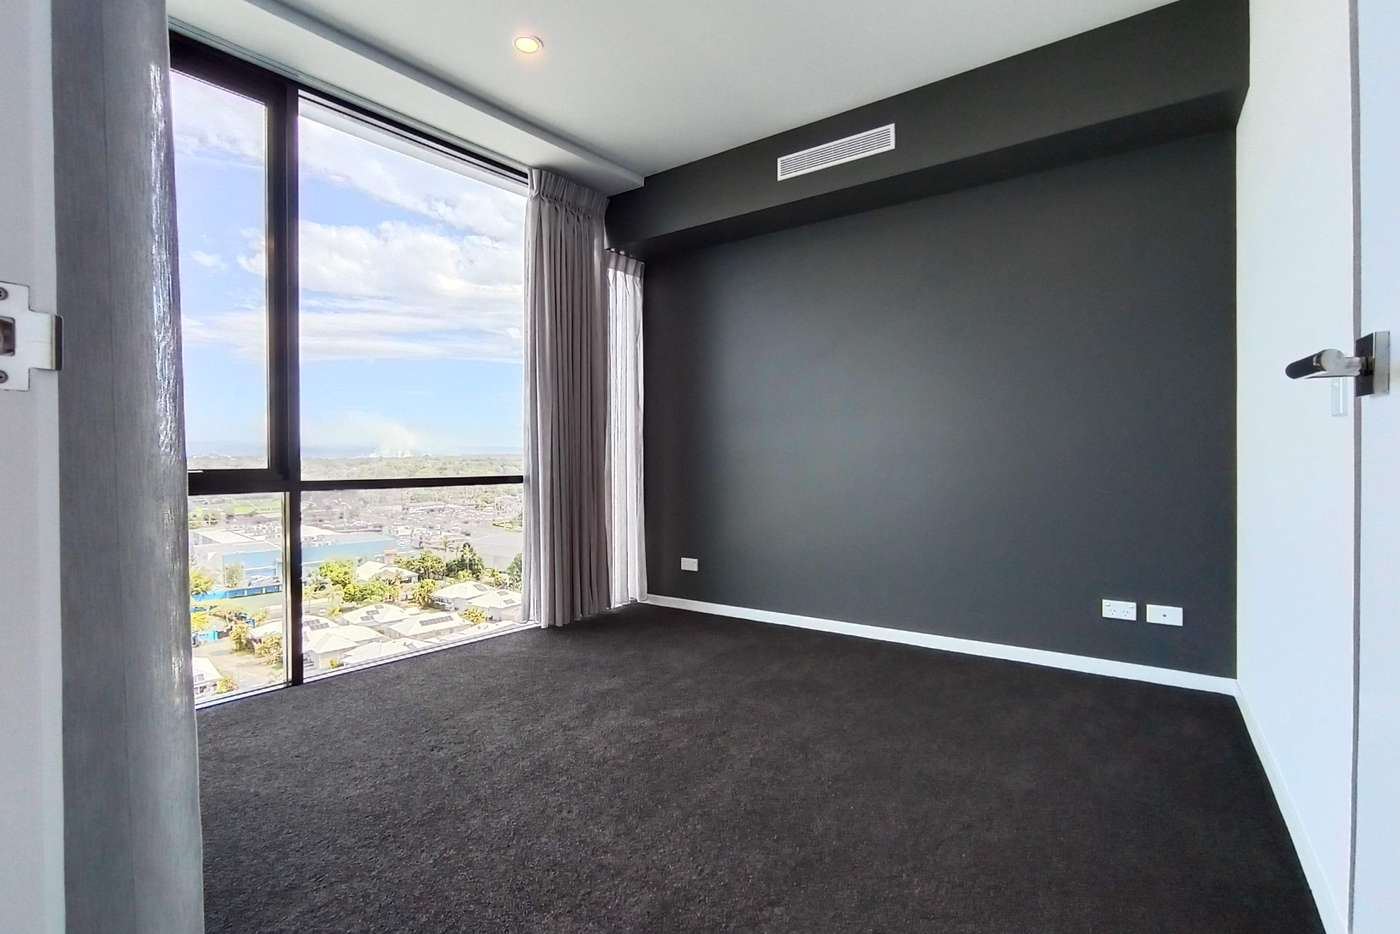 Sixth view of Homely apartment listing, 51110/5 Harbourside Court, Biggera Waters QLD 4216